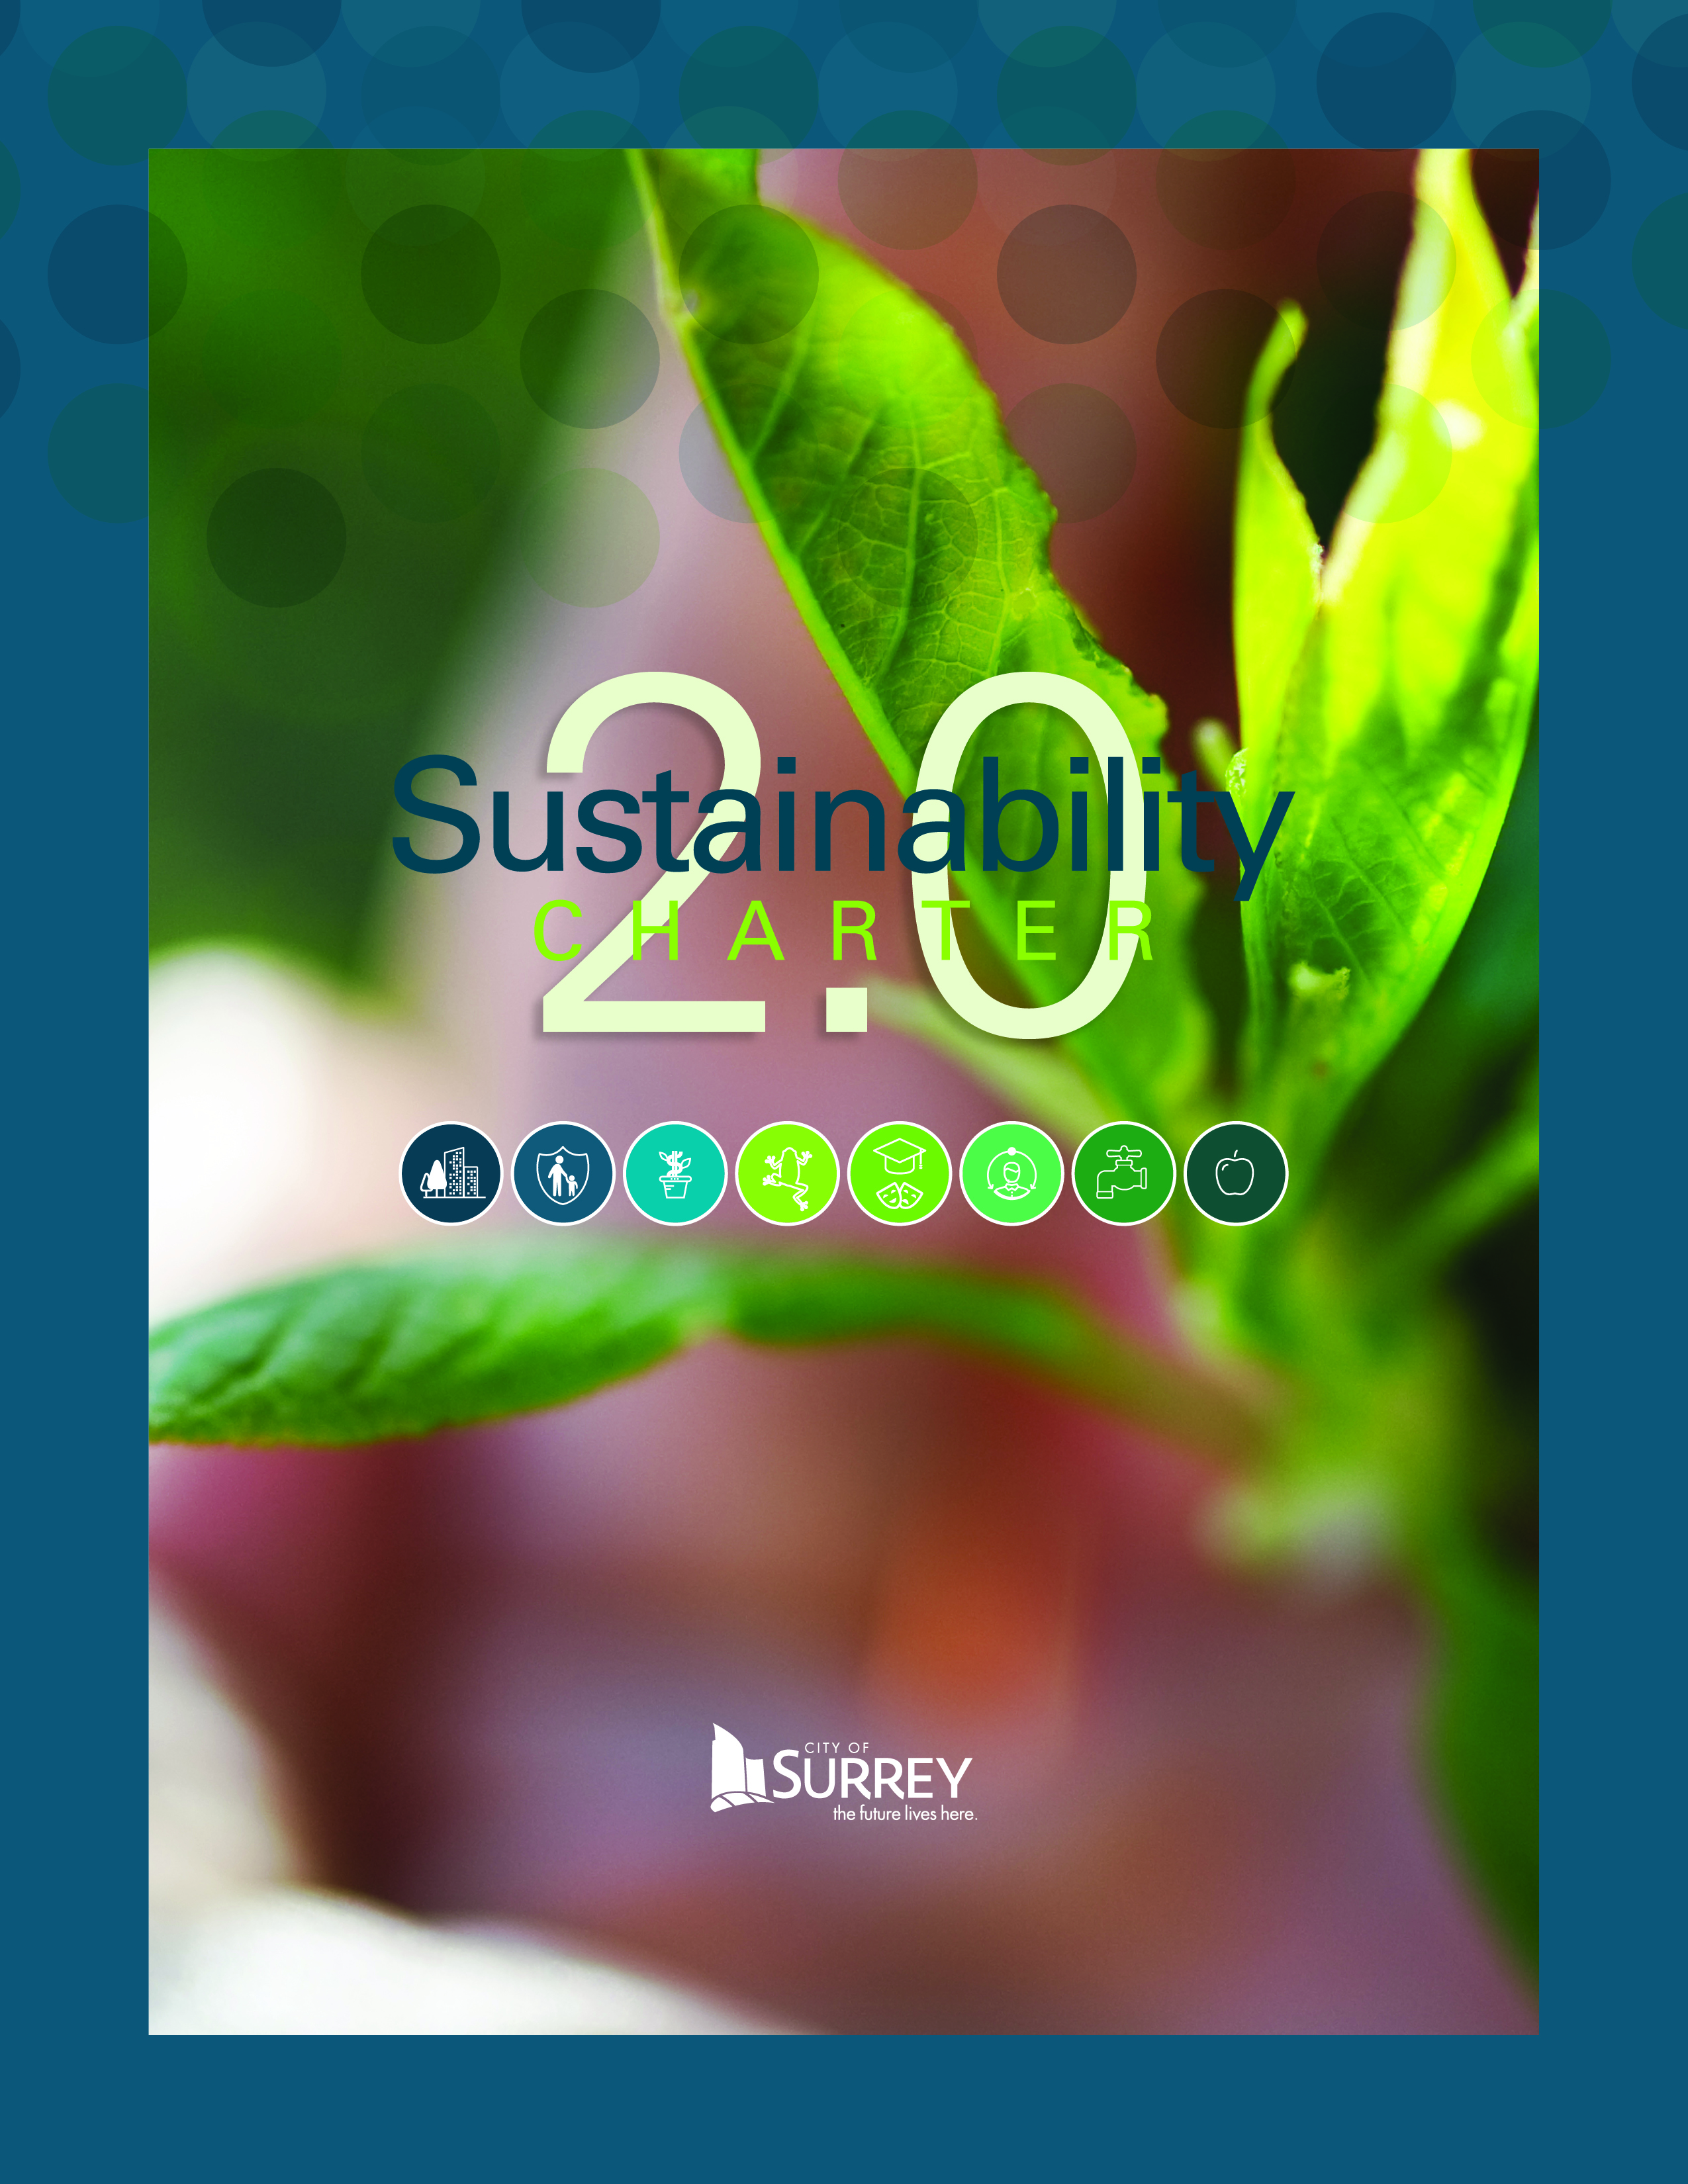 City of Surrey Sustainability Charter